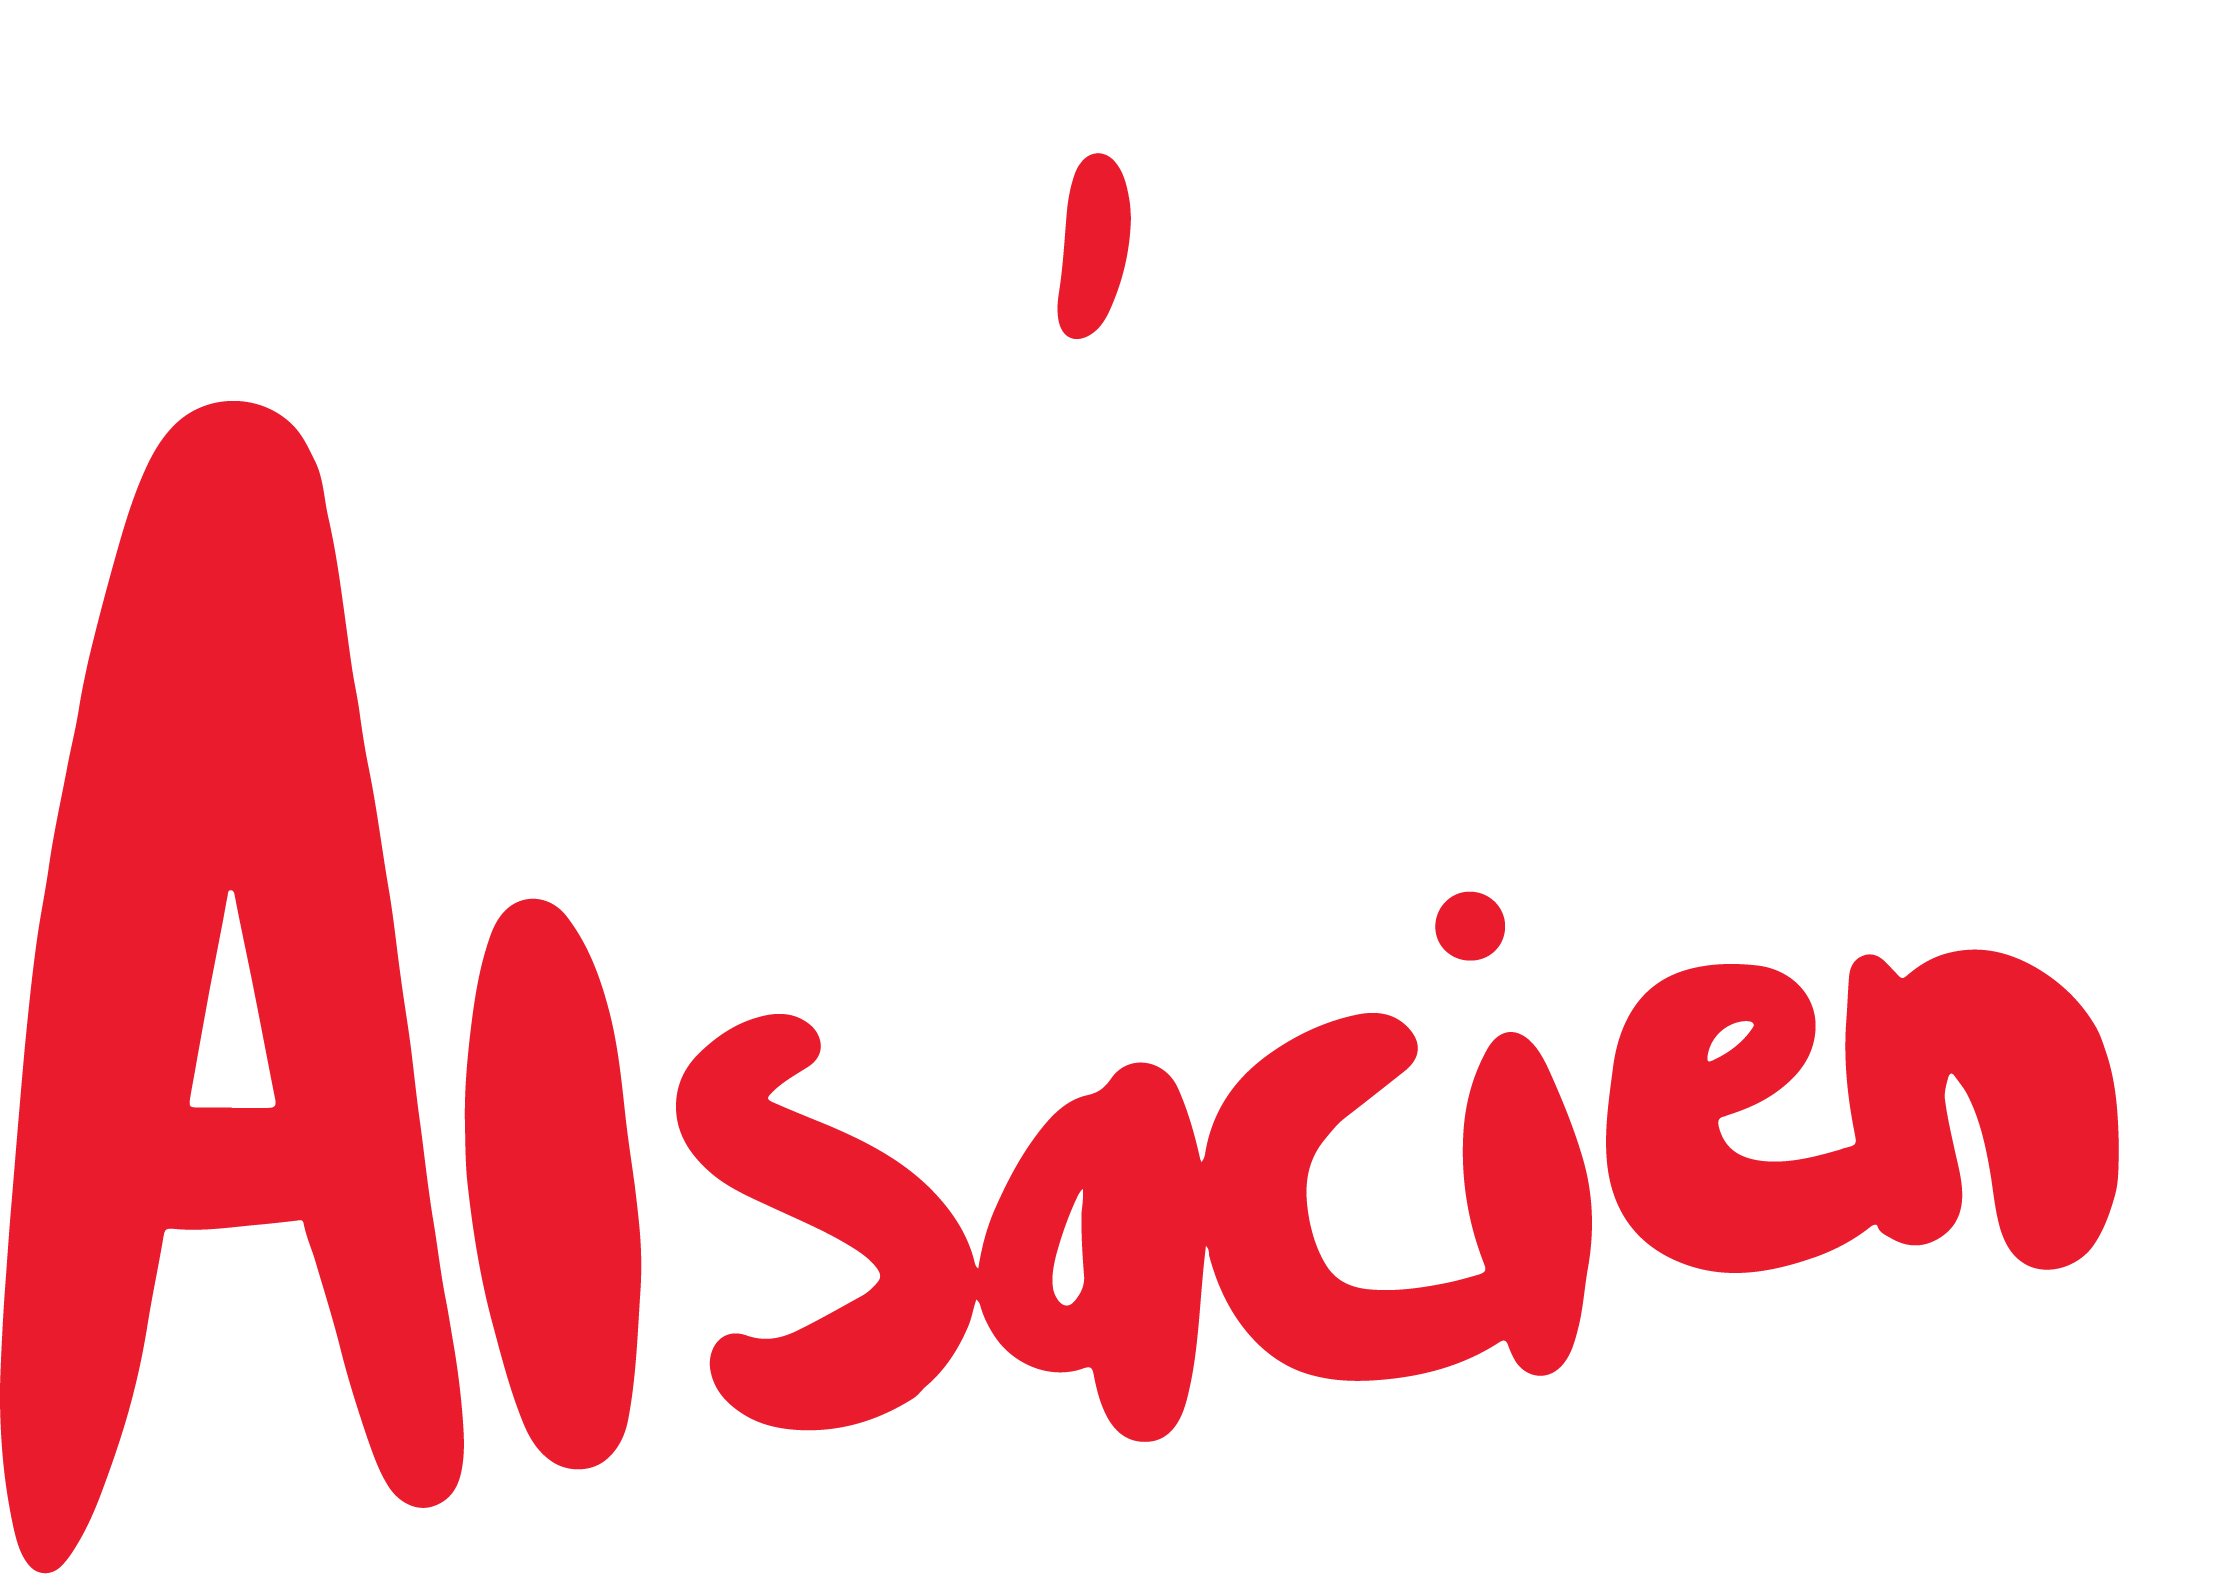 Le P'tit Alsacien - Alternative white logo